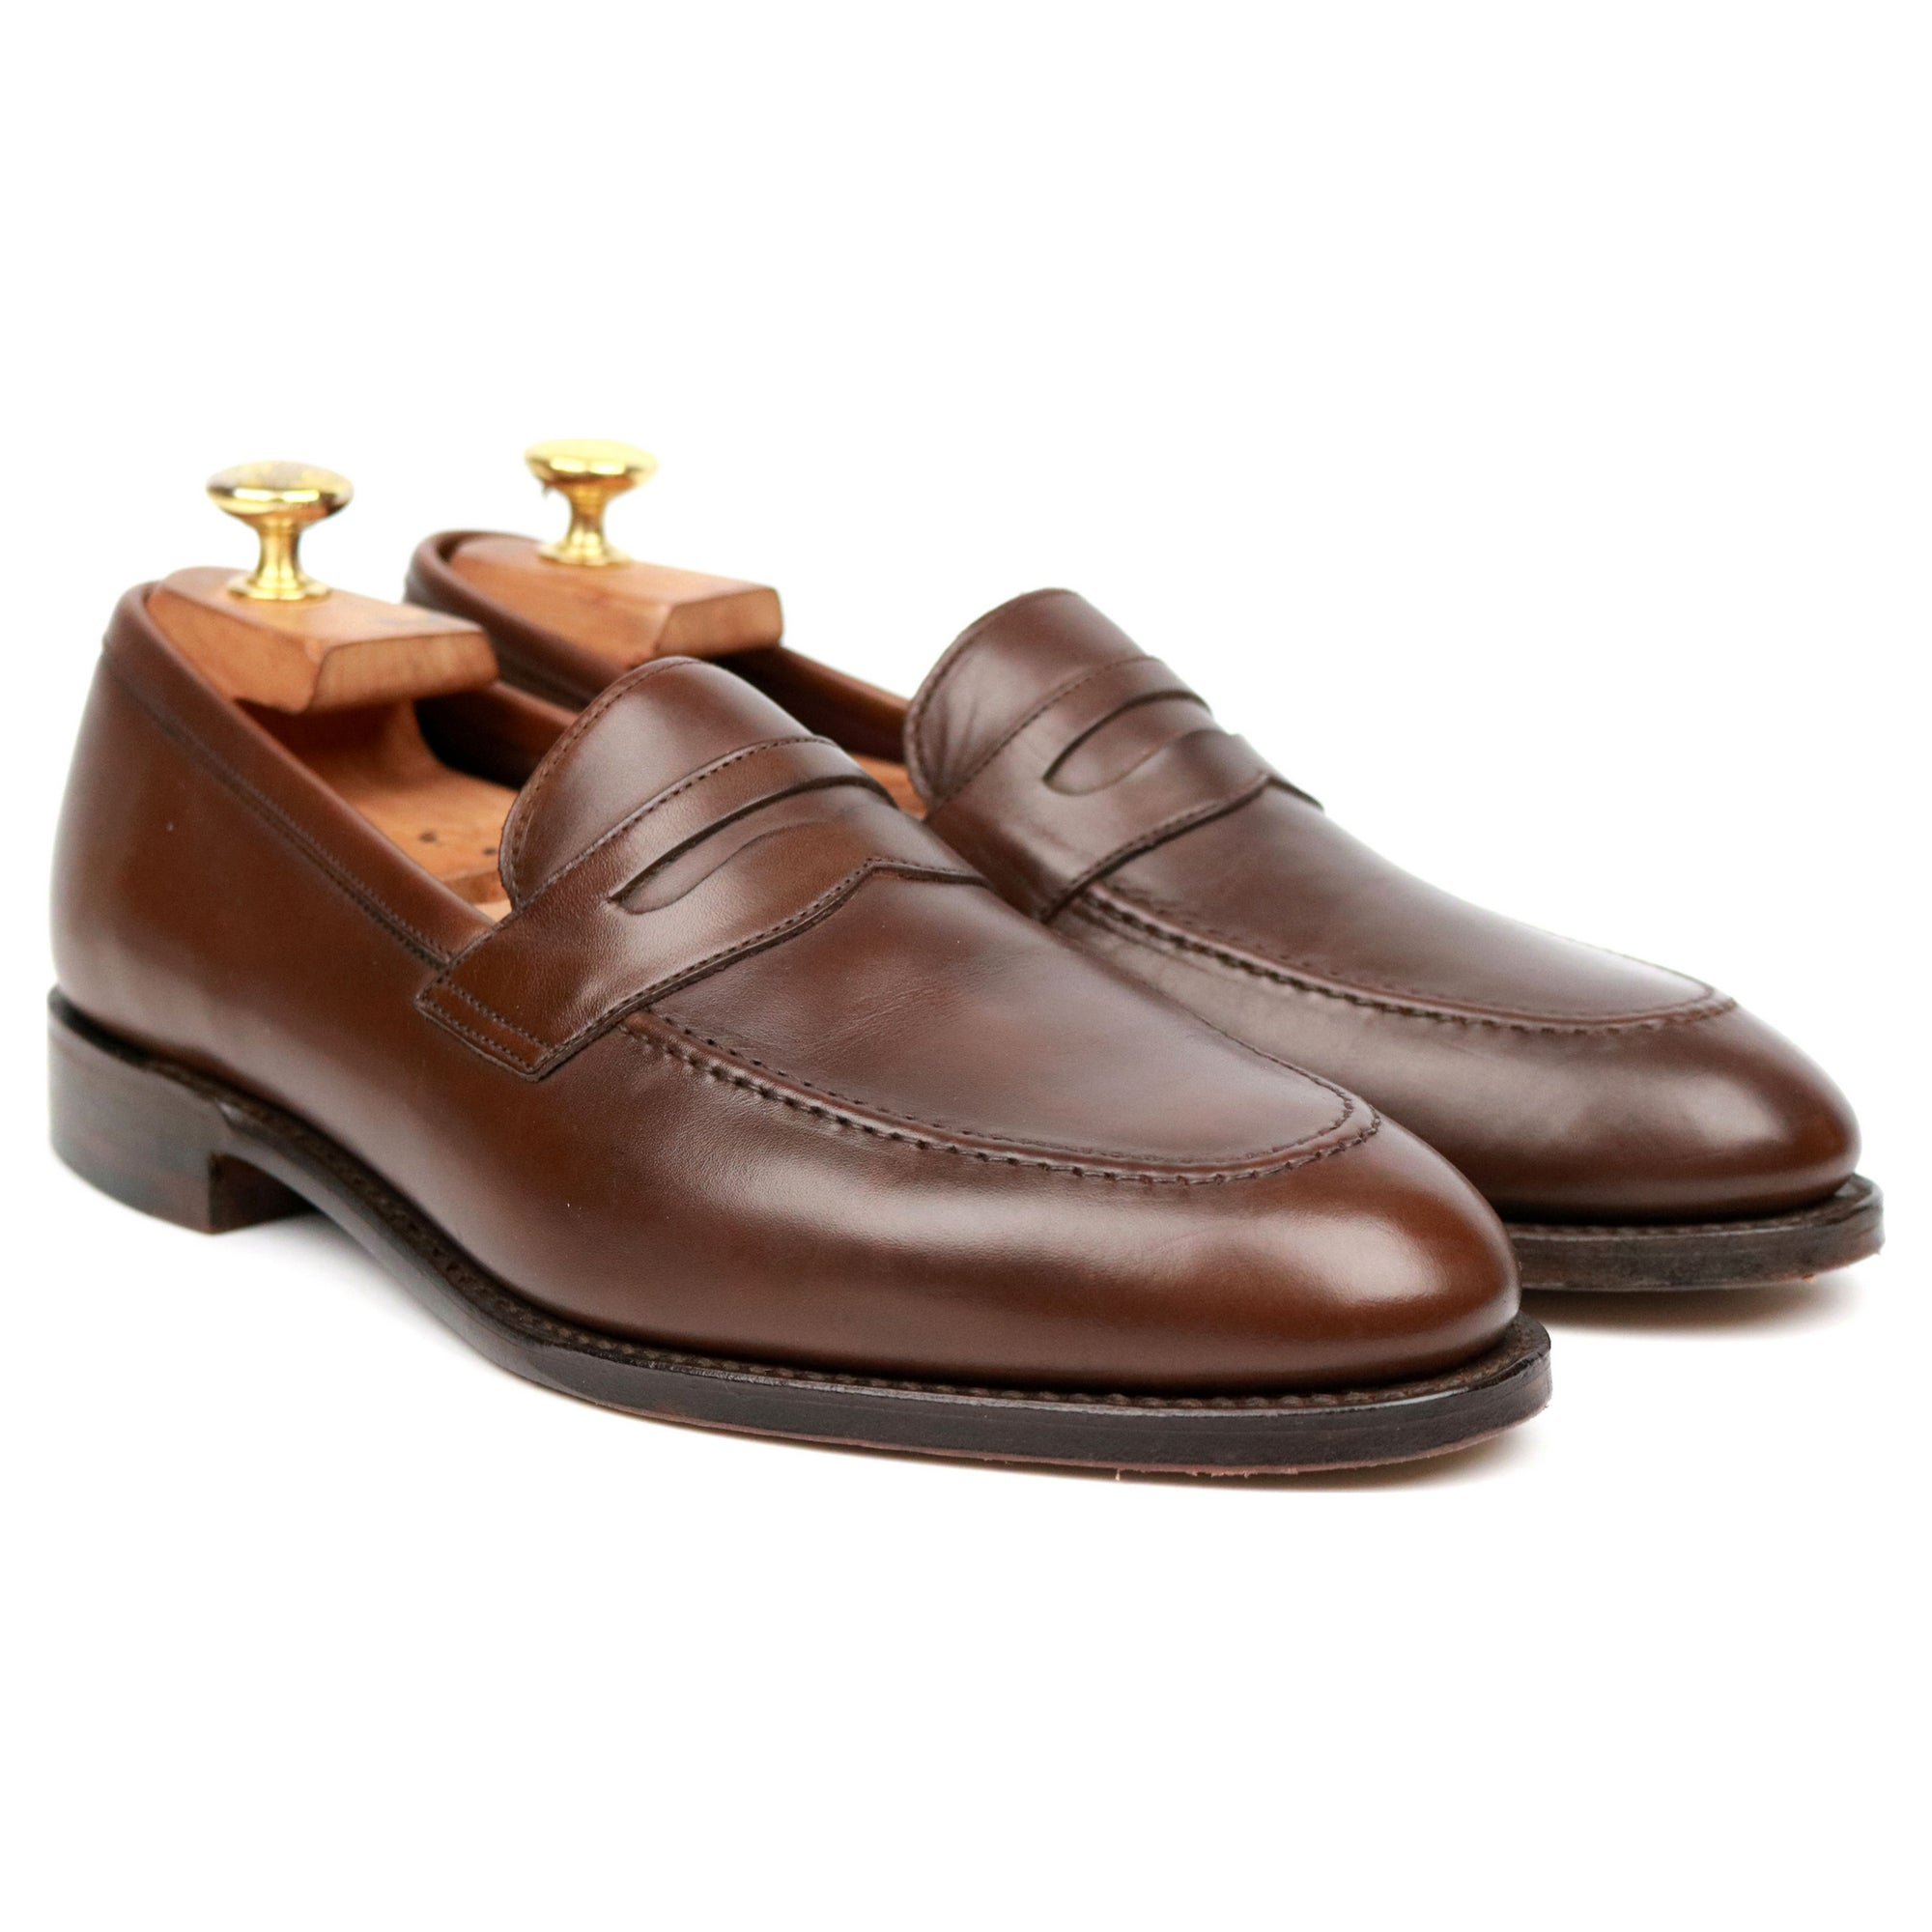 Loake 1880 'Whitehall' Brown Leather Loafers UK 8 F